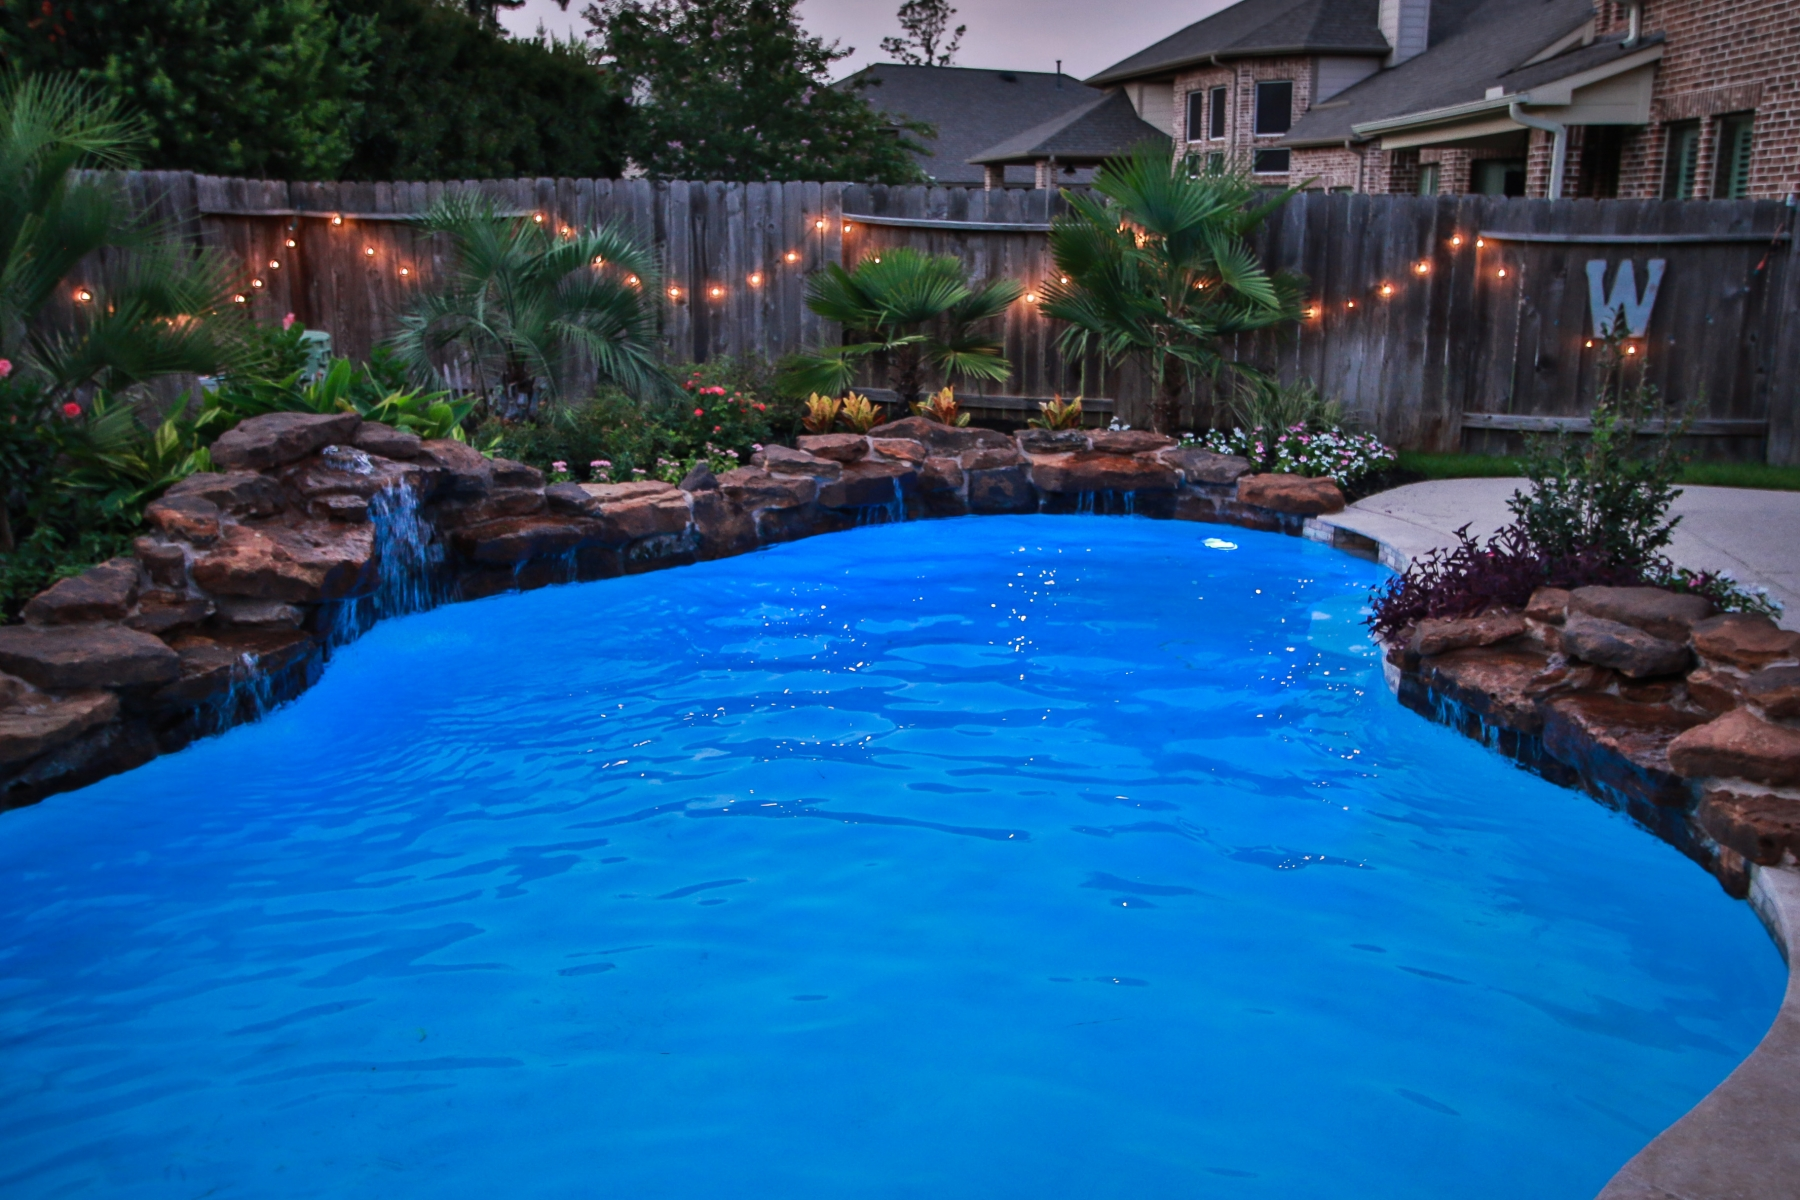 Freeform Pool with Rock Waterfall and Custom Lighting at Night